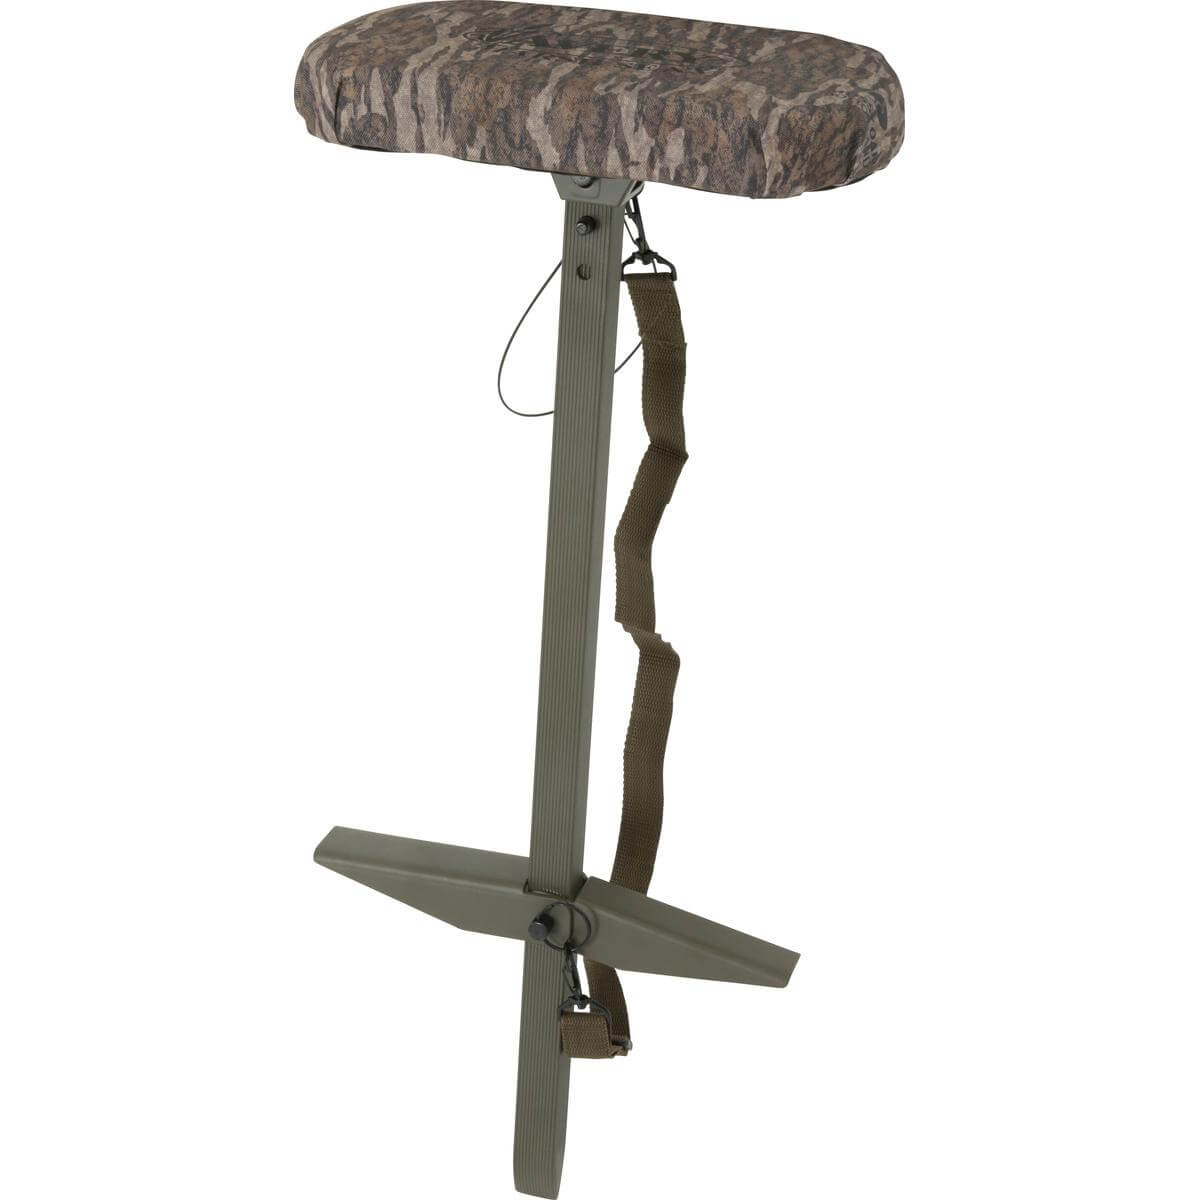 duck hunting chair cover hire herefordshire chairs stools for the blind field marsh 24 products